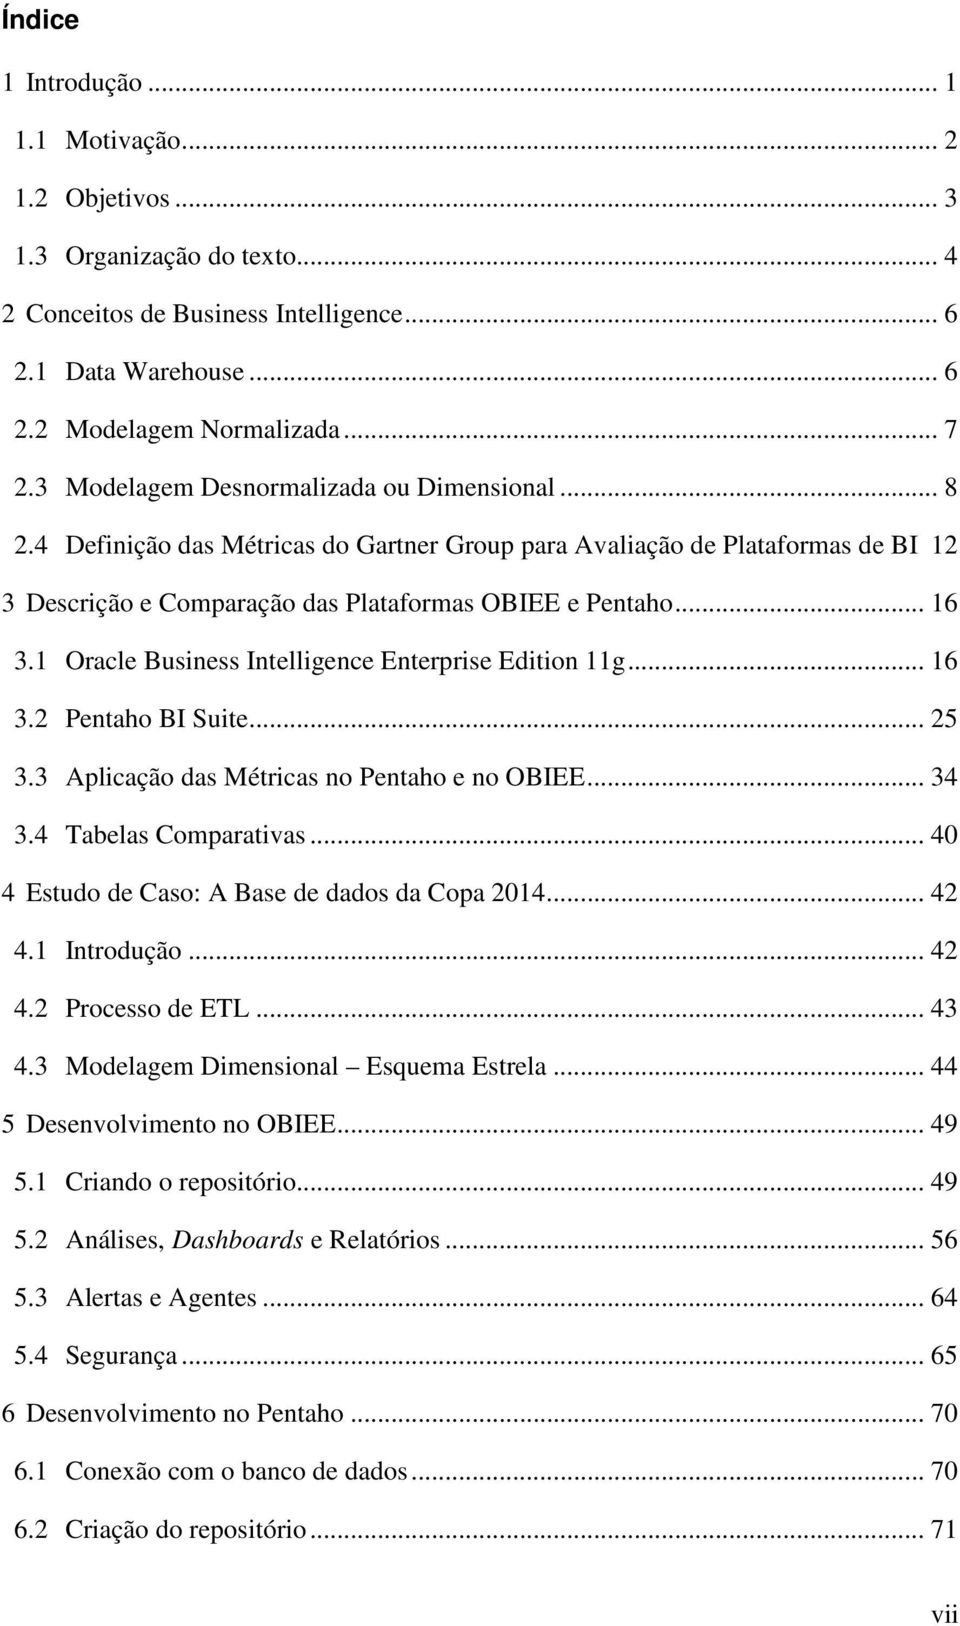 1 Oracle Business Intelligence Enterprise Edition 11g... 16 3.2 Pentaho BI Suite... 25 3.3 Aplicação das Métricas no Pentaho e no OBIEE... 34 3.4 Tabelas Comparativas.